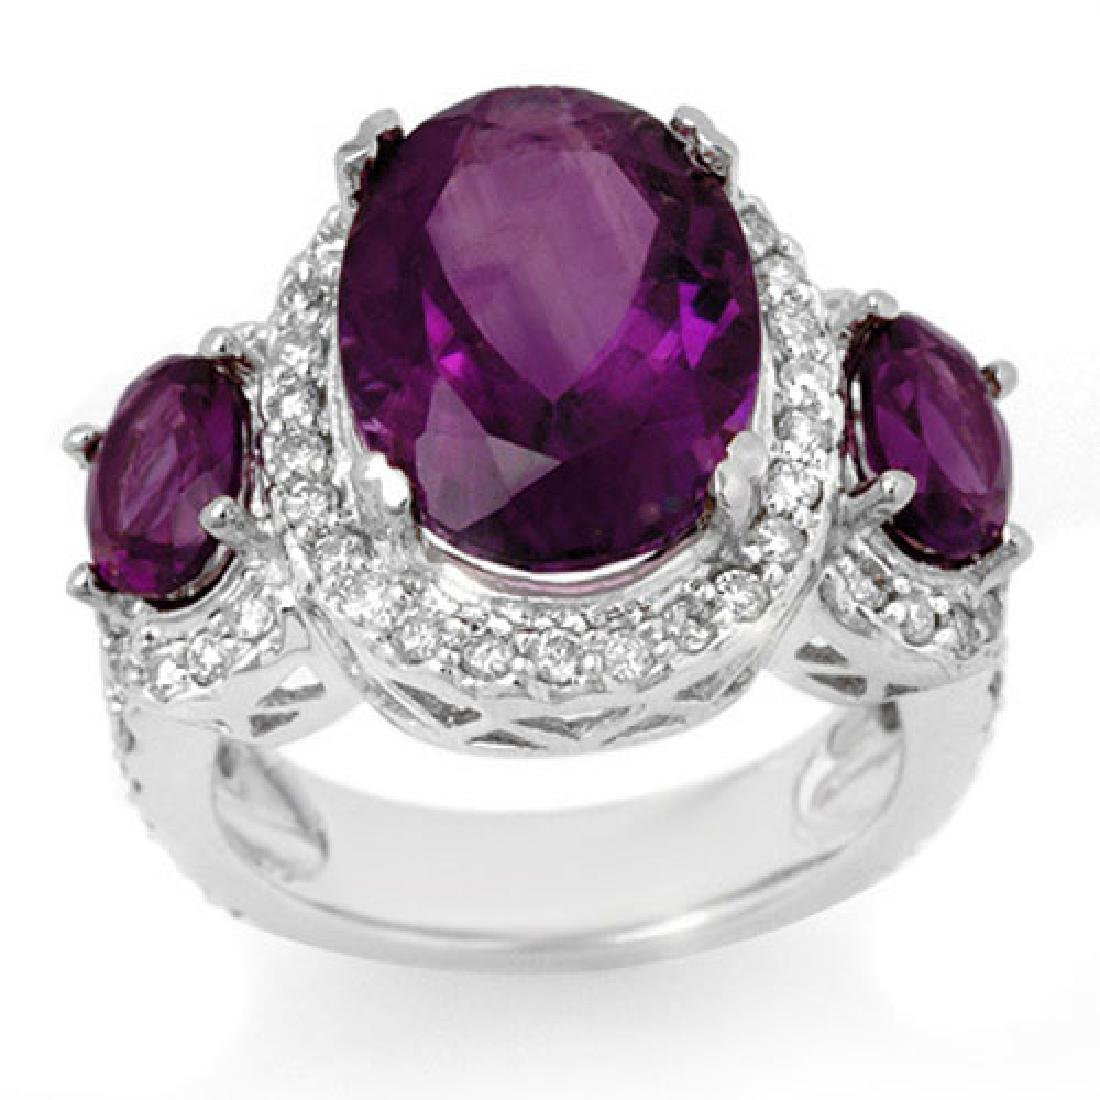 8.0 CTW Amethyst & Diamond Ring 10K White Gold